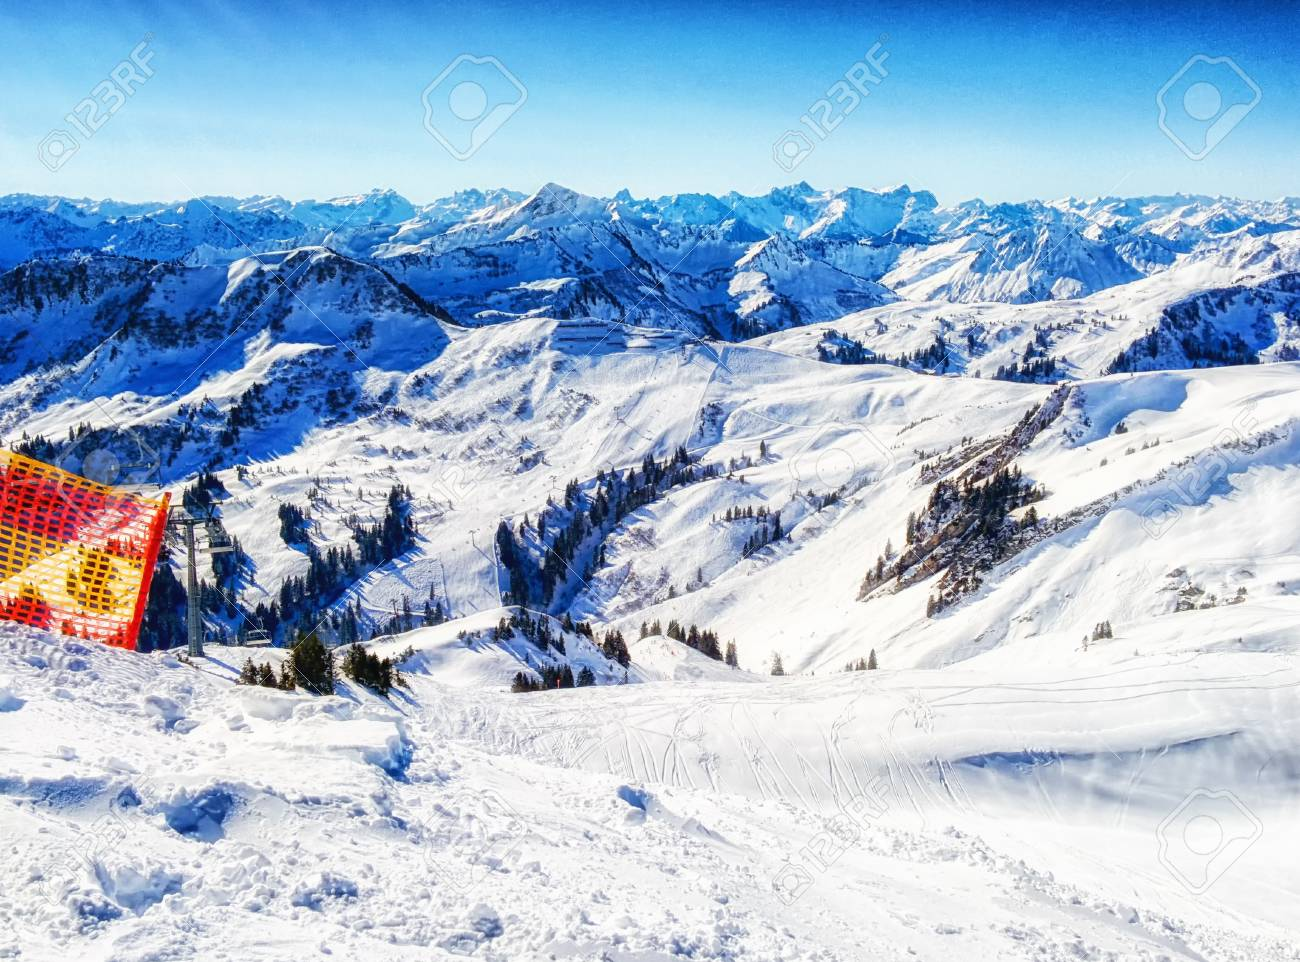 mountain ski resort damuls austria stock photo, picture and royalty